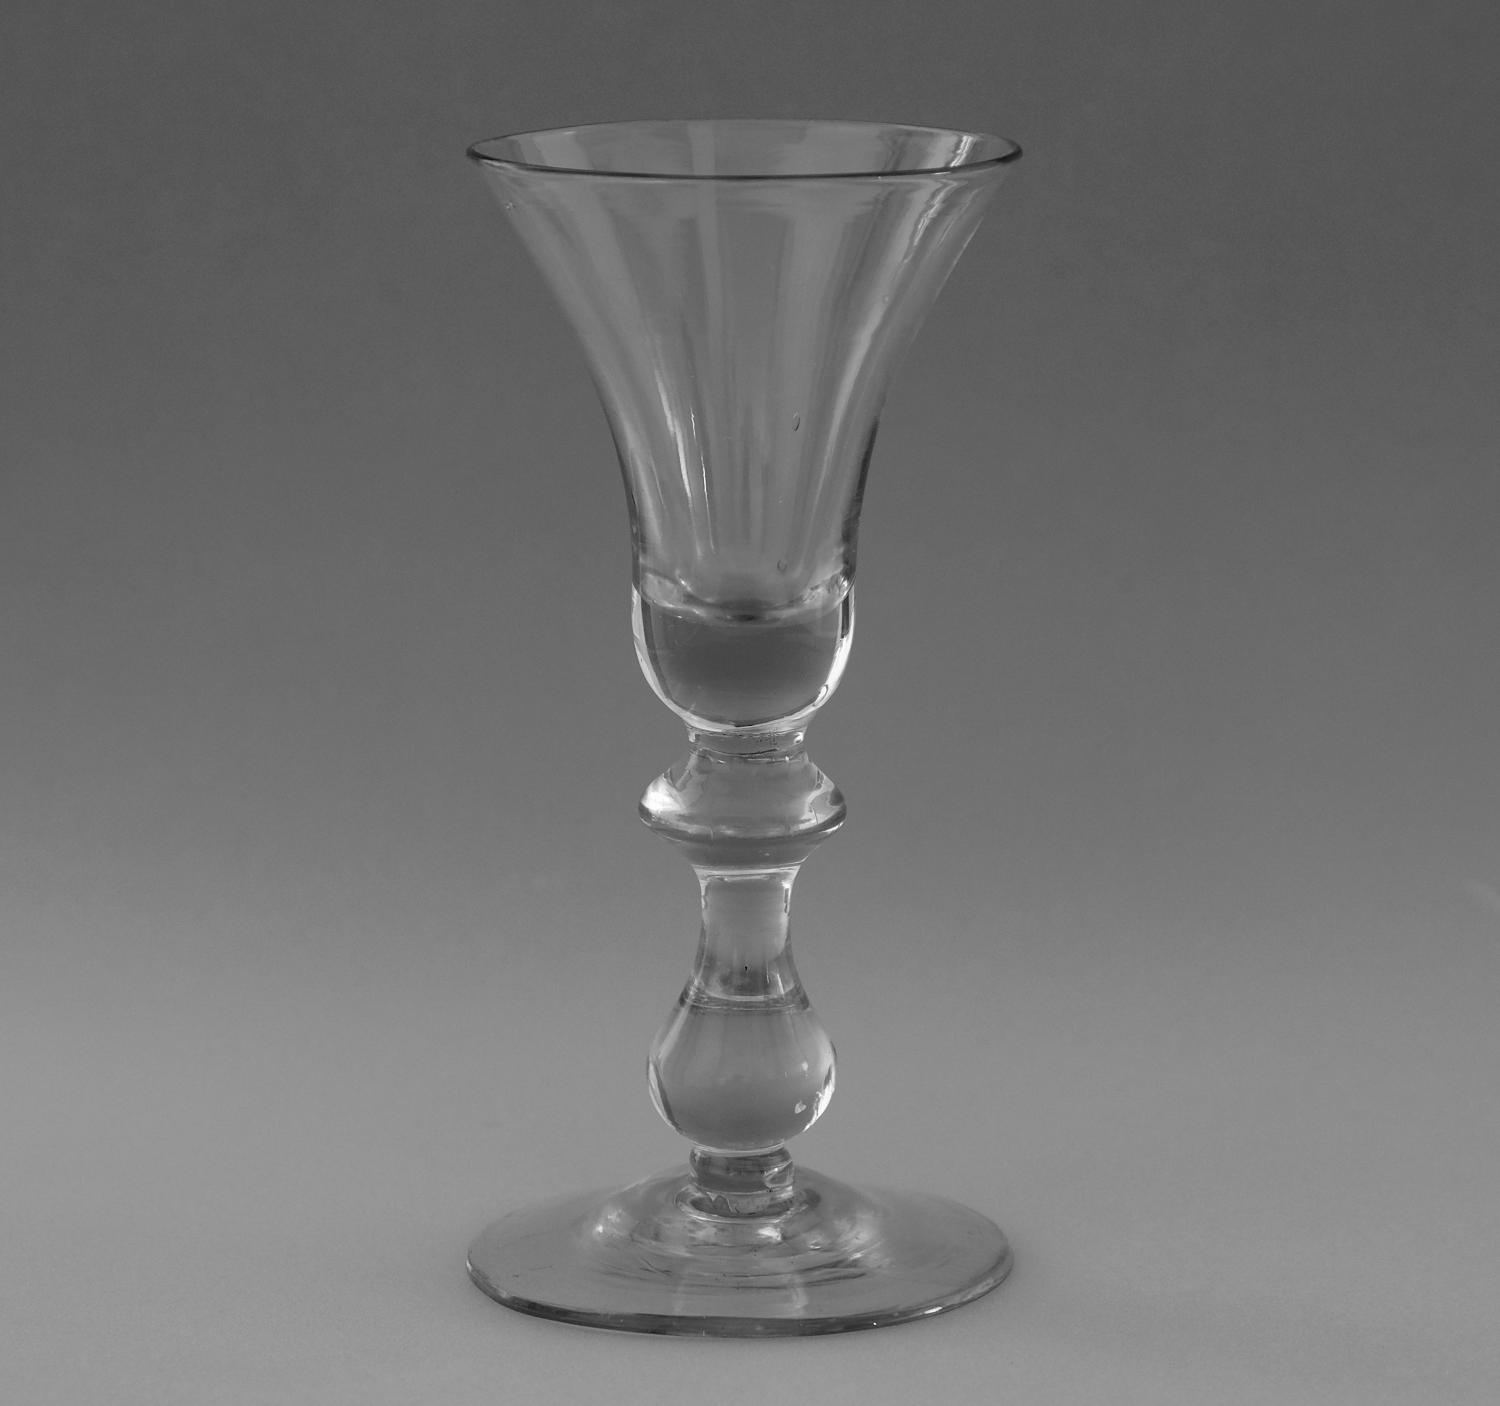 Baluster wine glass C1725-35